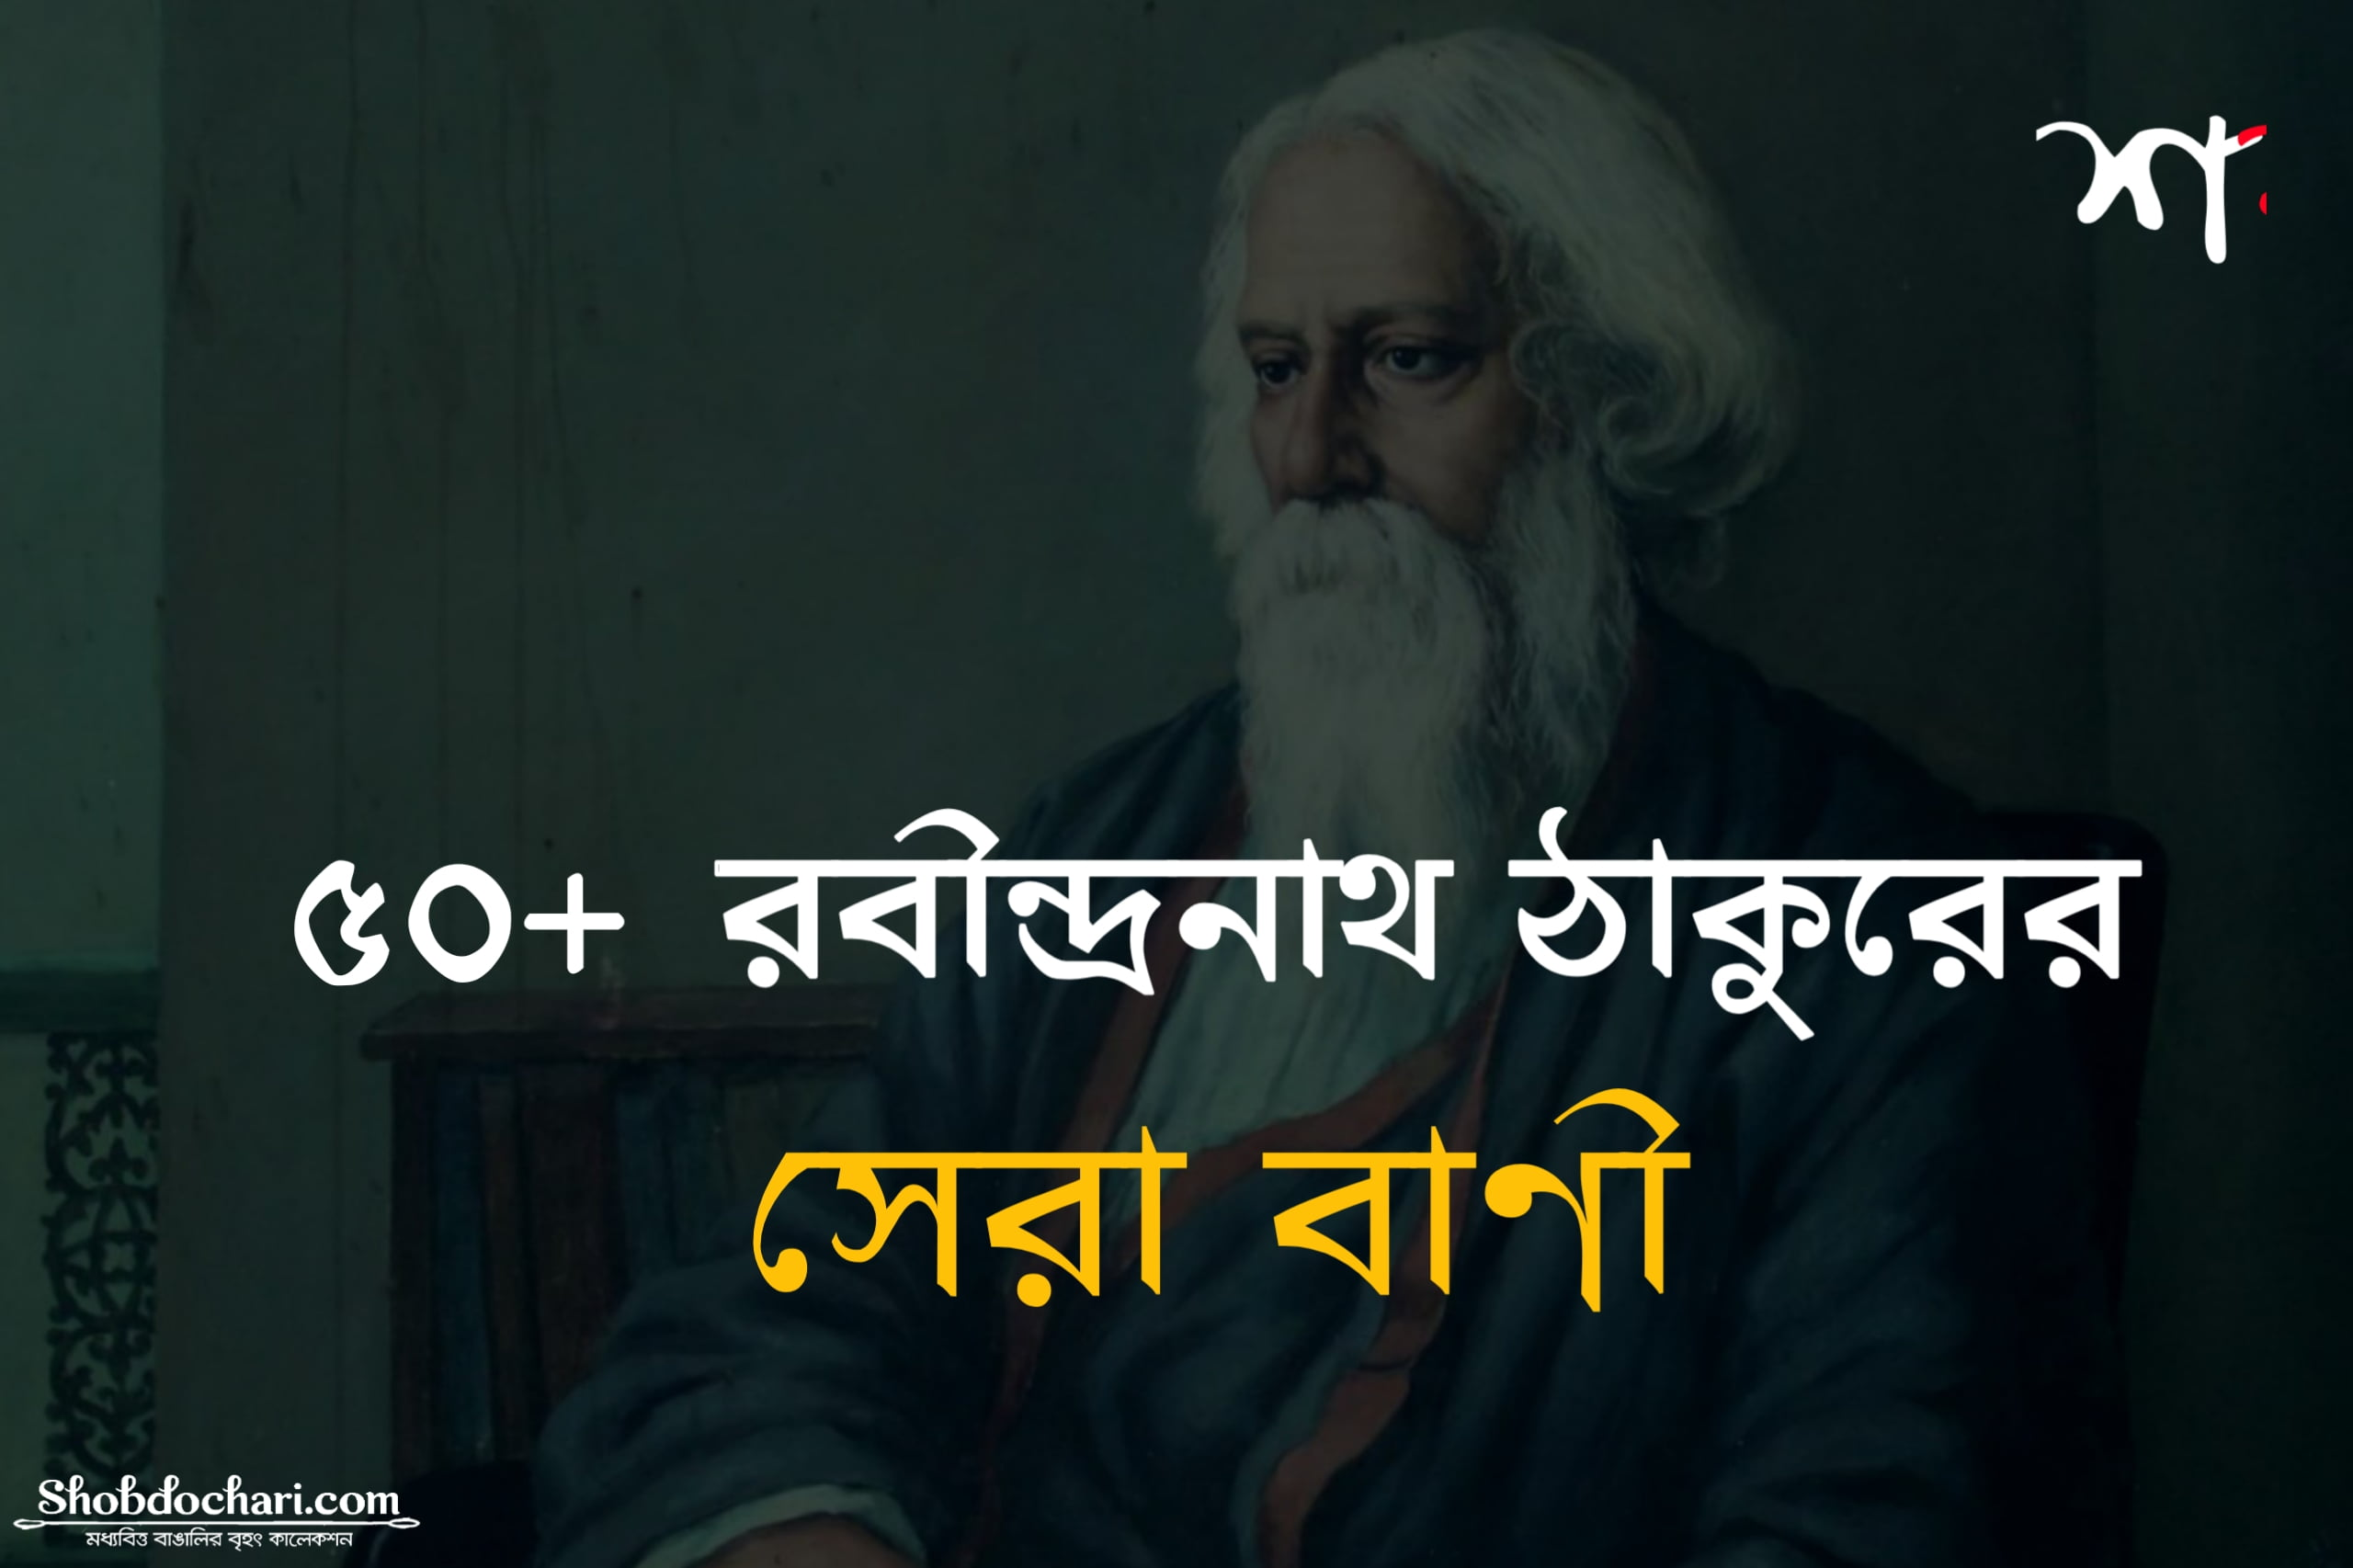 Best quotes Of Rabindranath tagore| shobdochari.com